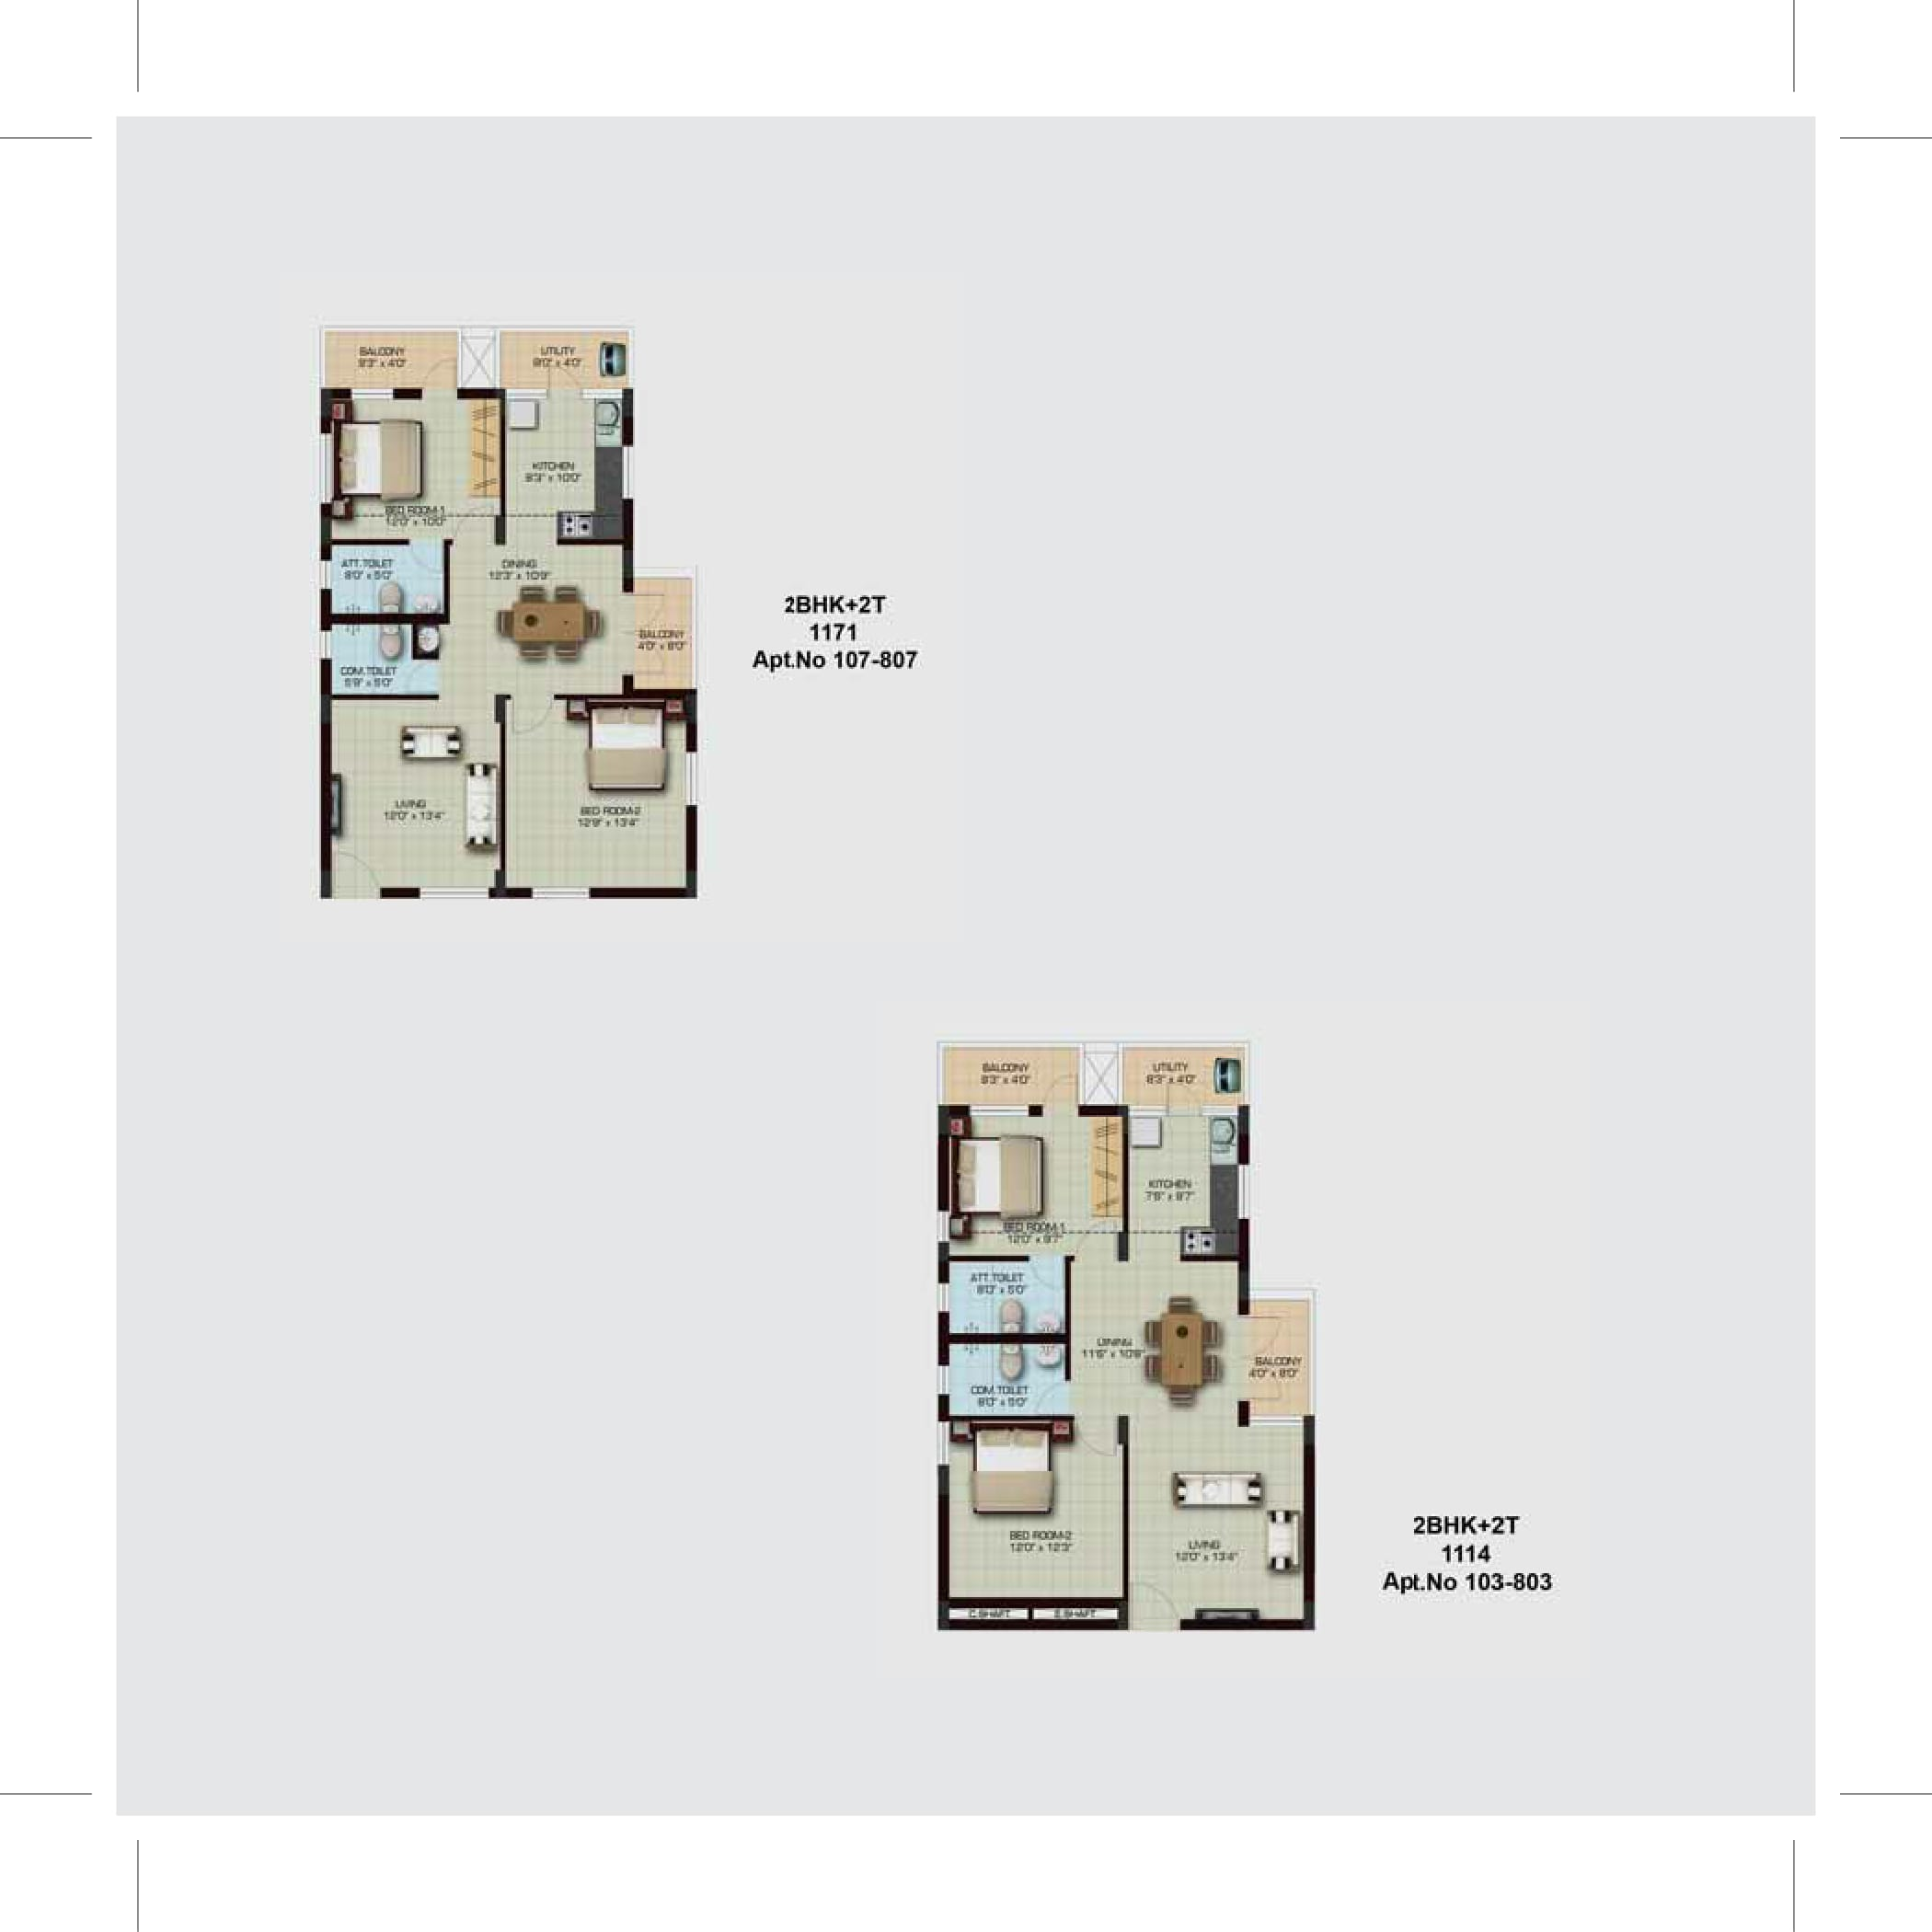 2BHK 2T Floor Plan